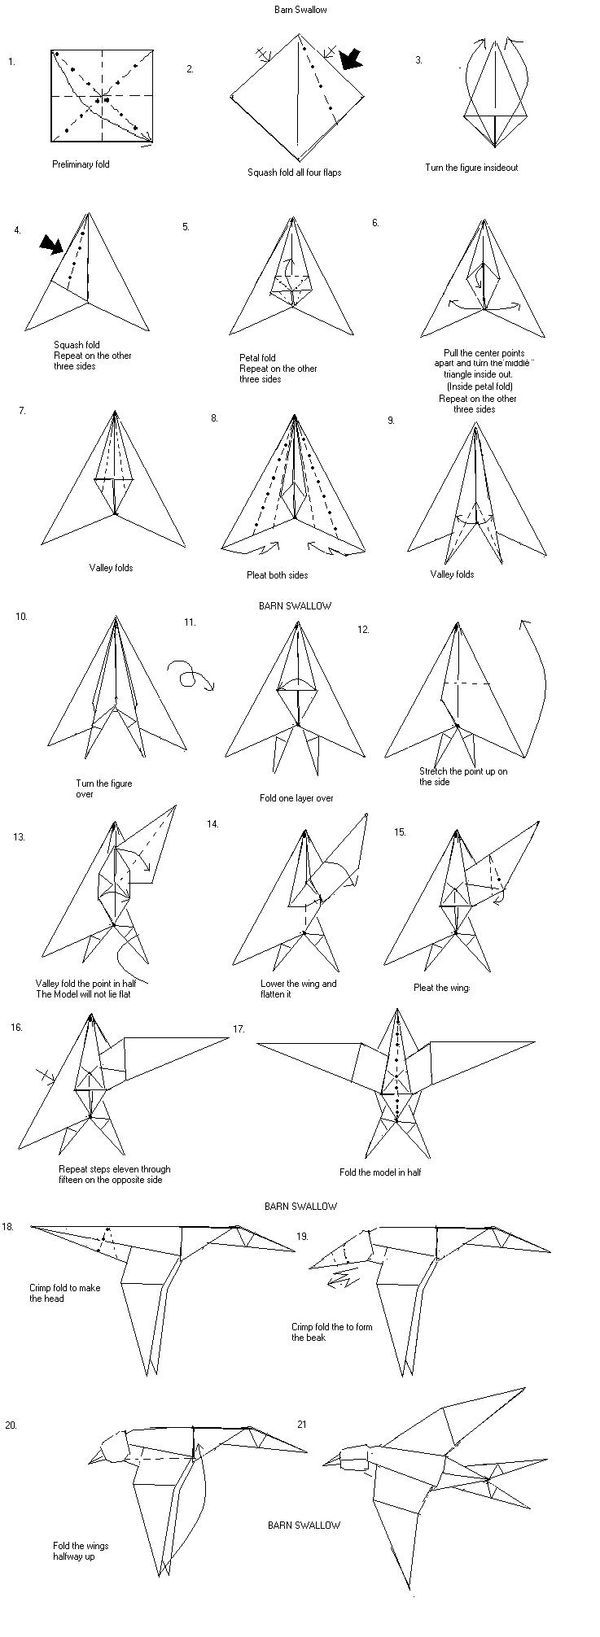 wasbella102 | Origami diagrams, Origami and Swallows